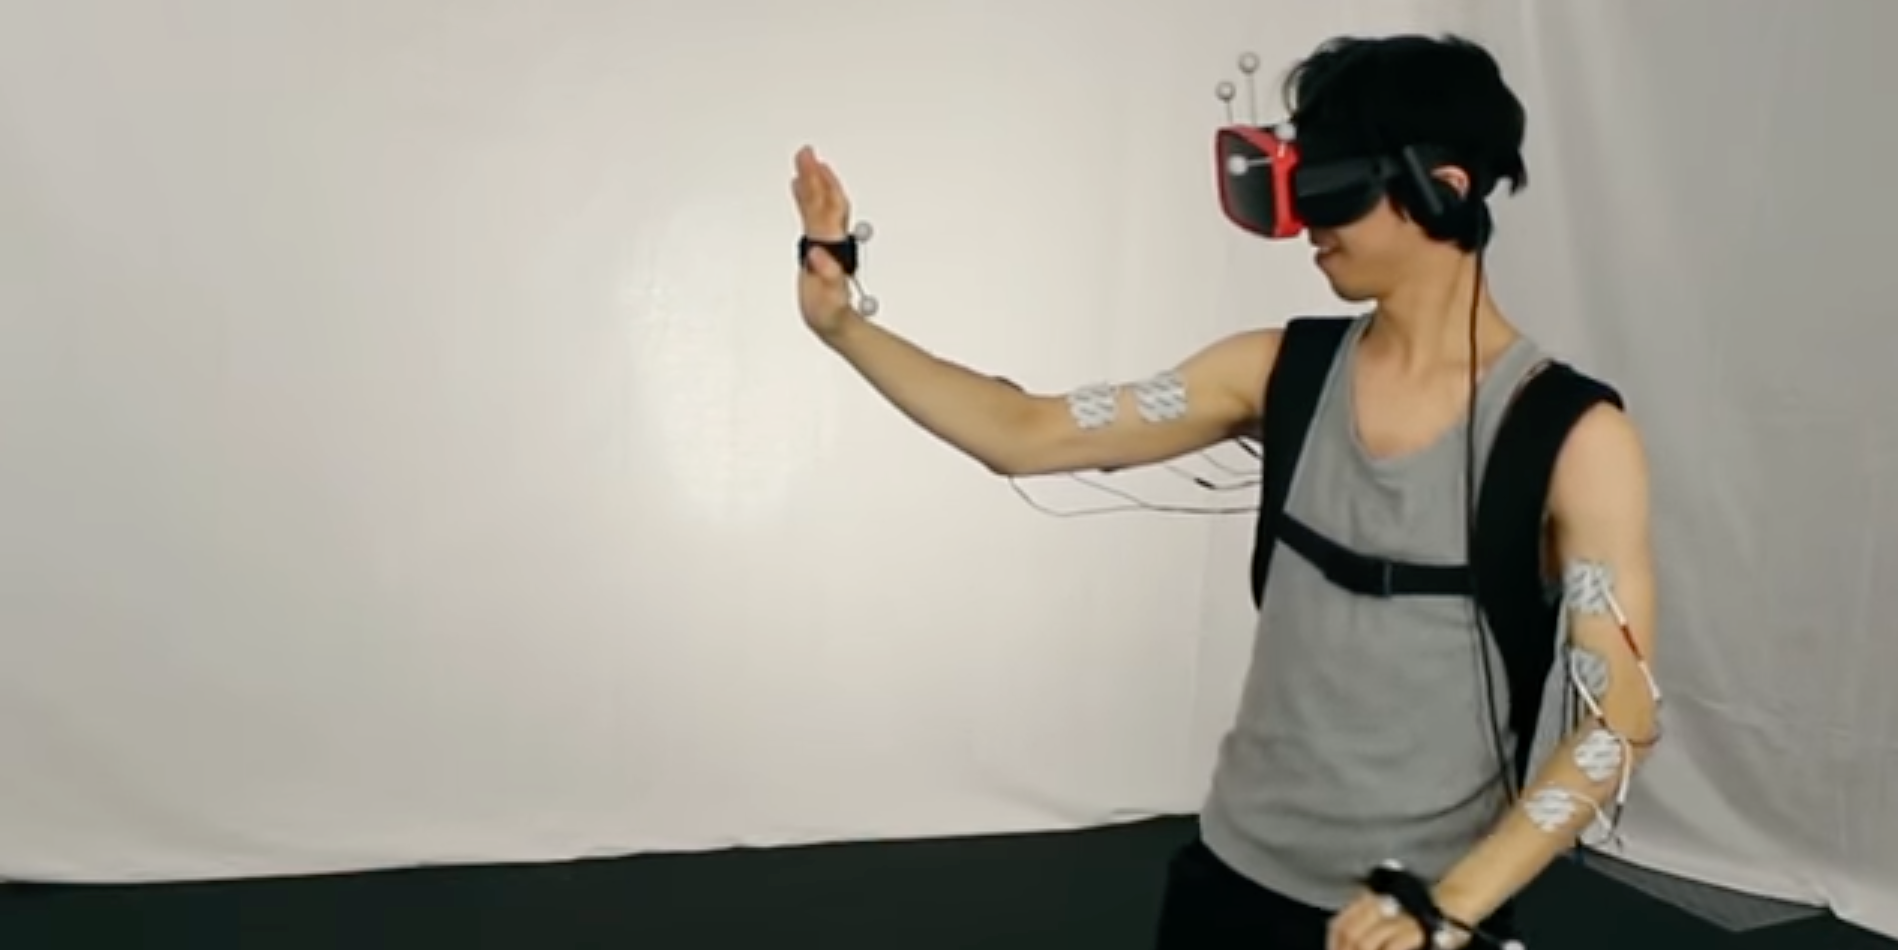 muscle stimulation virtual lab